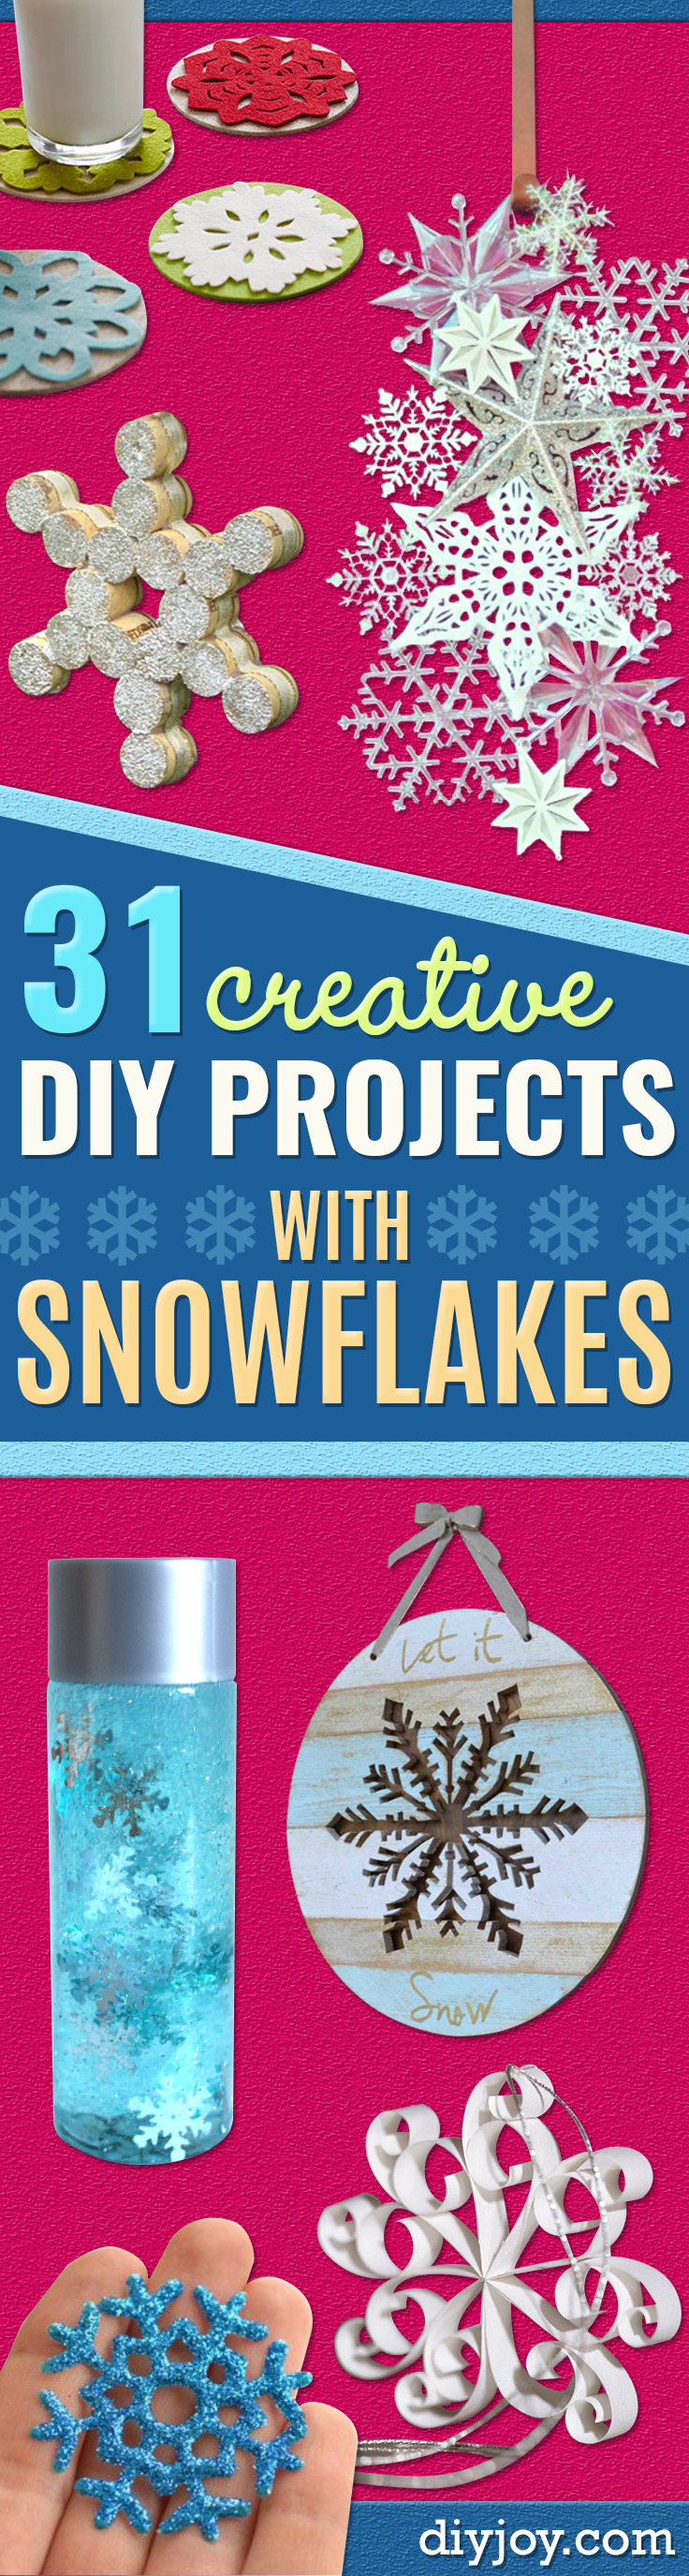 snowflake crafts winter - Best DIY Snowflake Decorations, Ornaments and Crafts - Paper Crafts with Snowflakes, Pipe Cleaner Projects, Mason Jars and Dollar Store Ideas - Easy DIY Ideas to Decorate for Winter - Creative Home Decor and Room Decorations for Adults, Teens and Kids